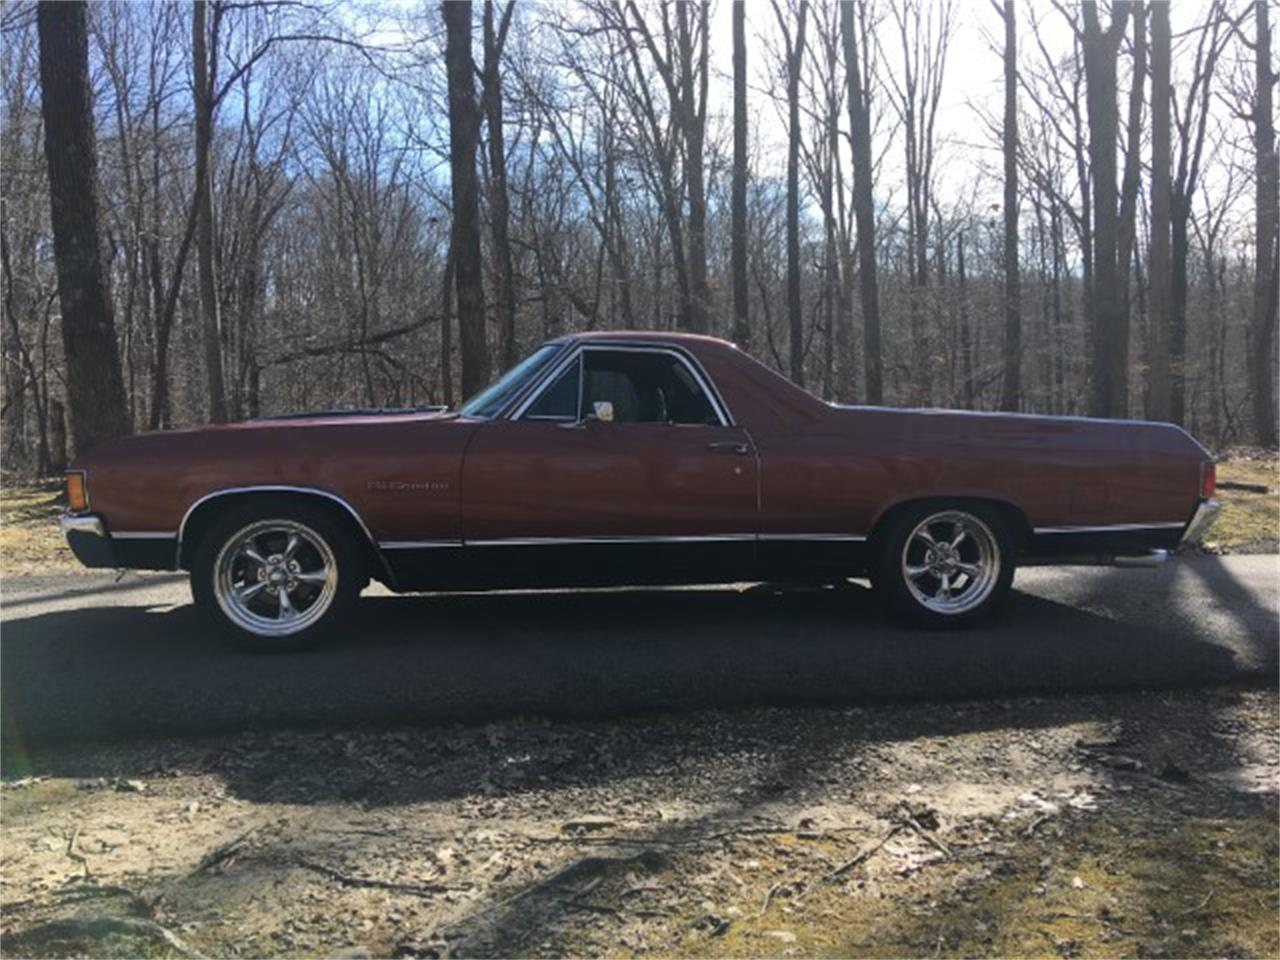 Large Picture of '72 Chevrolet El Camino located in Tennessee - MEUG